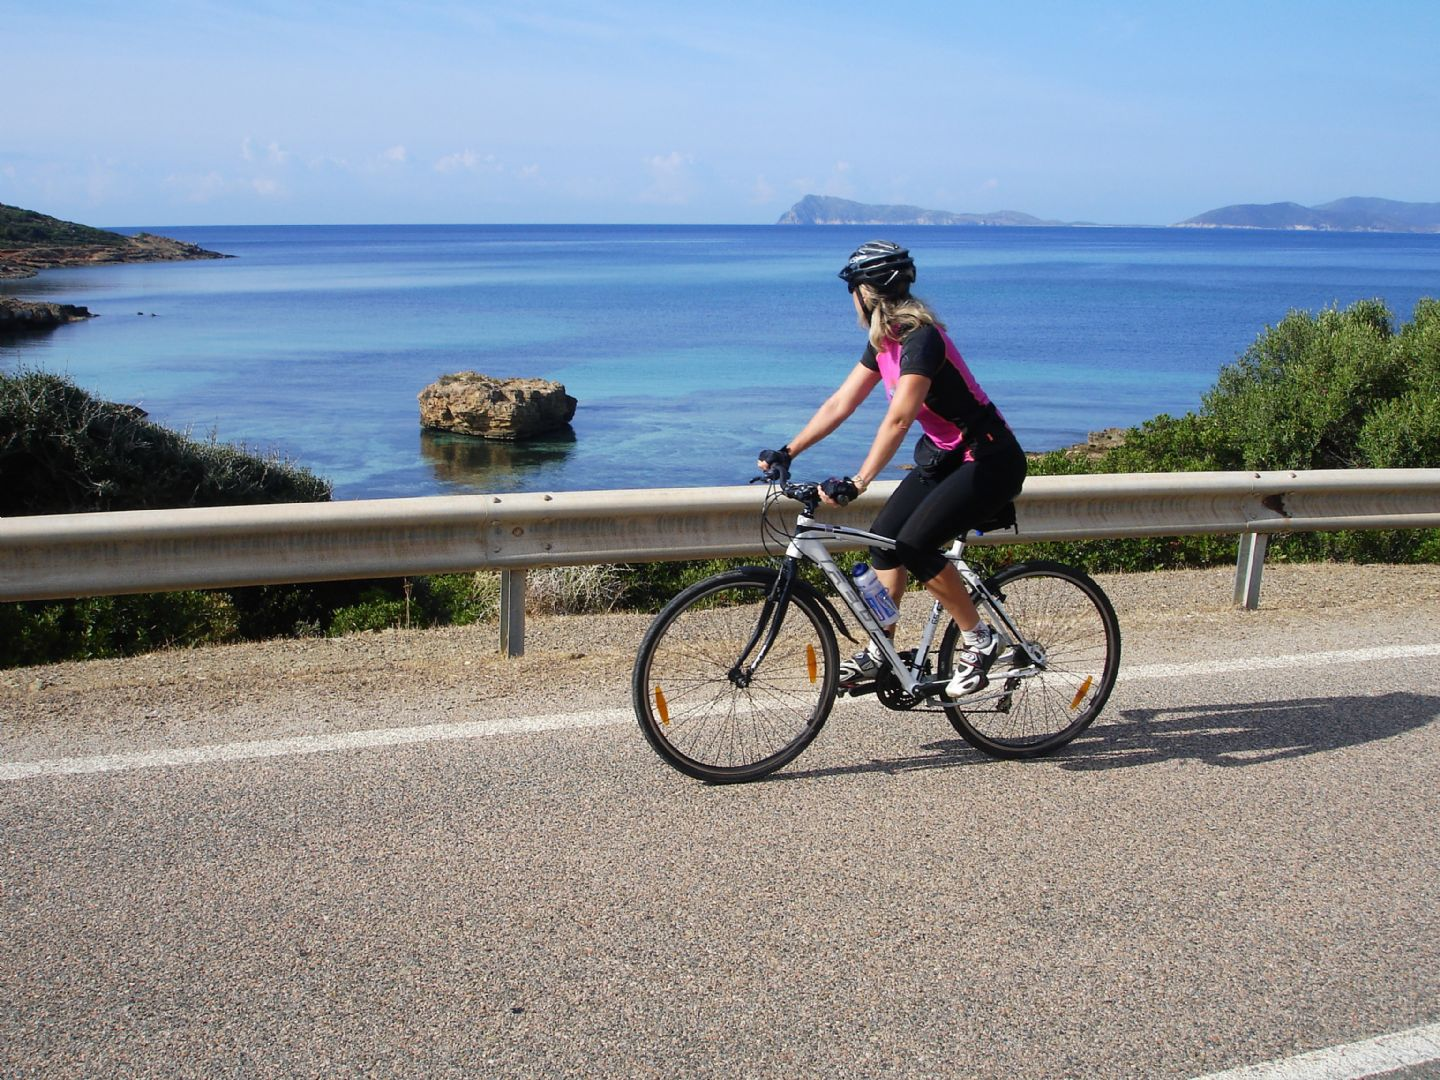 sardinialeisurecycling9.JPG - Italy - Sardinia - Coasts and Islands - Self-Guided Family Cycling Holiday - Family Cycling